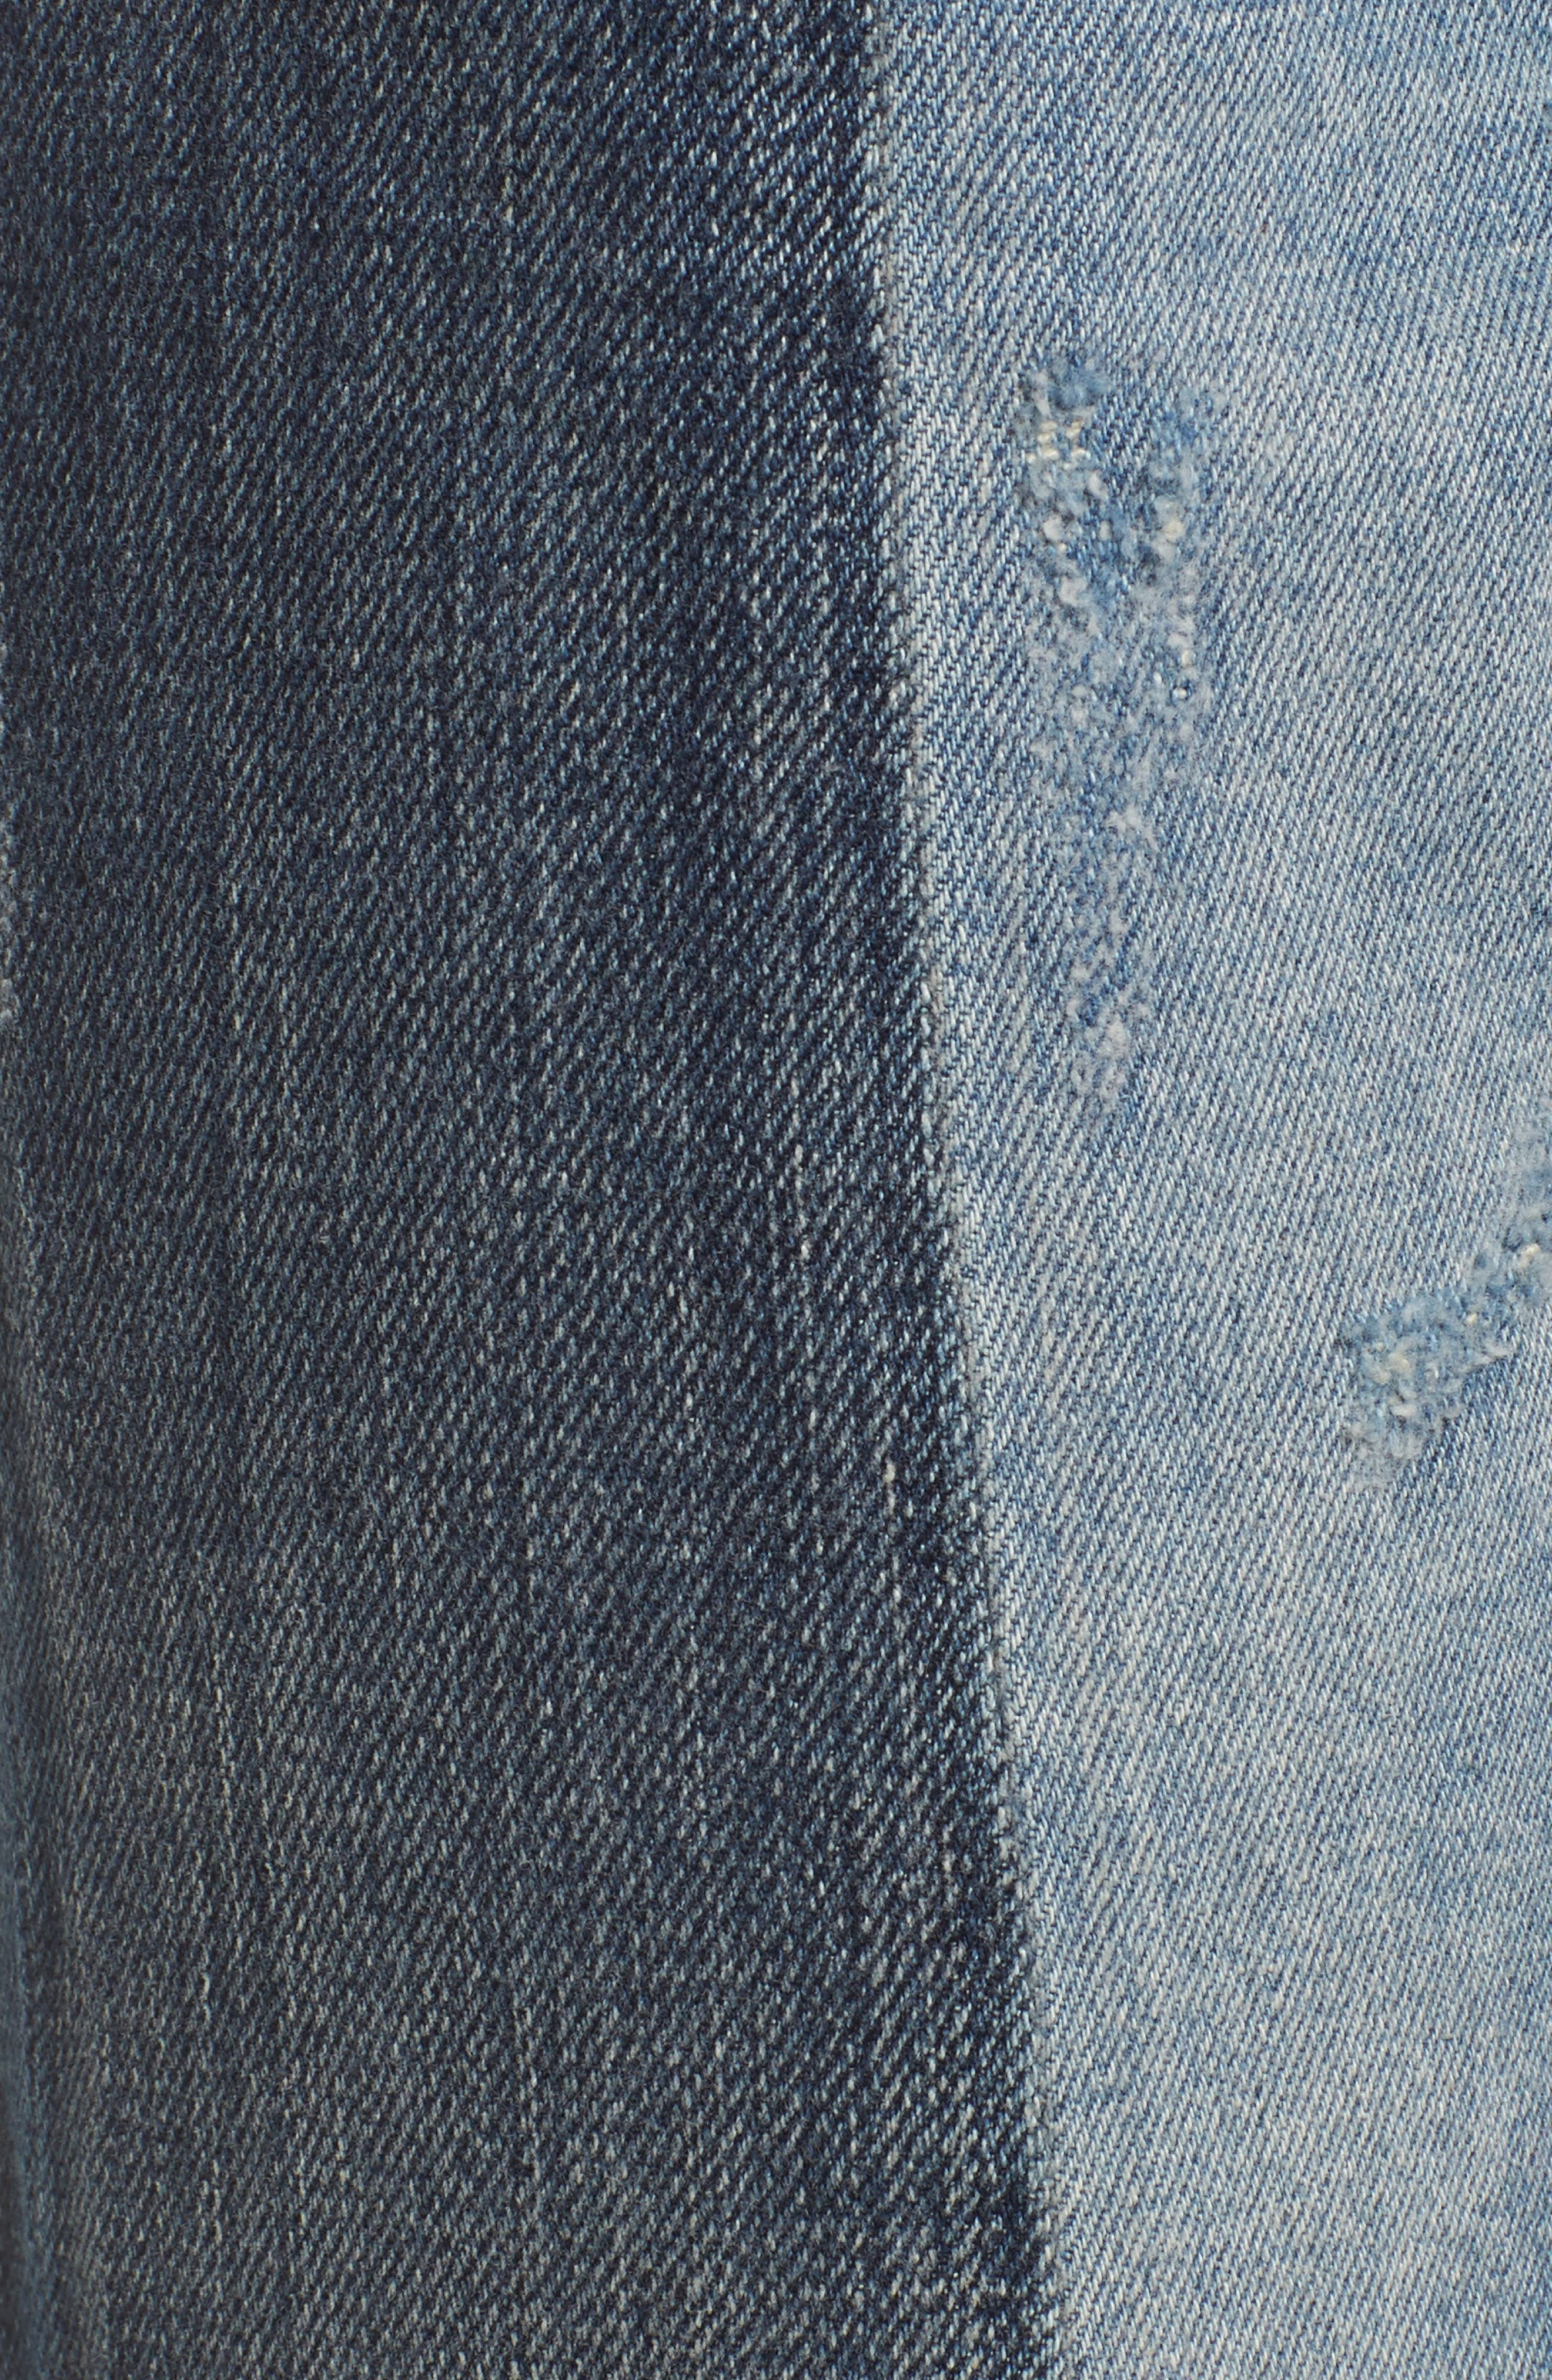 High Waist Patched Slim Jeans,                             Alternate thumbnail 5, color,                             400